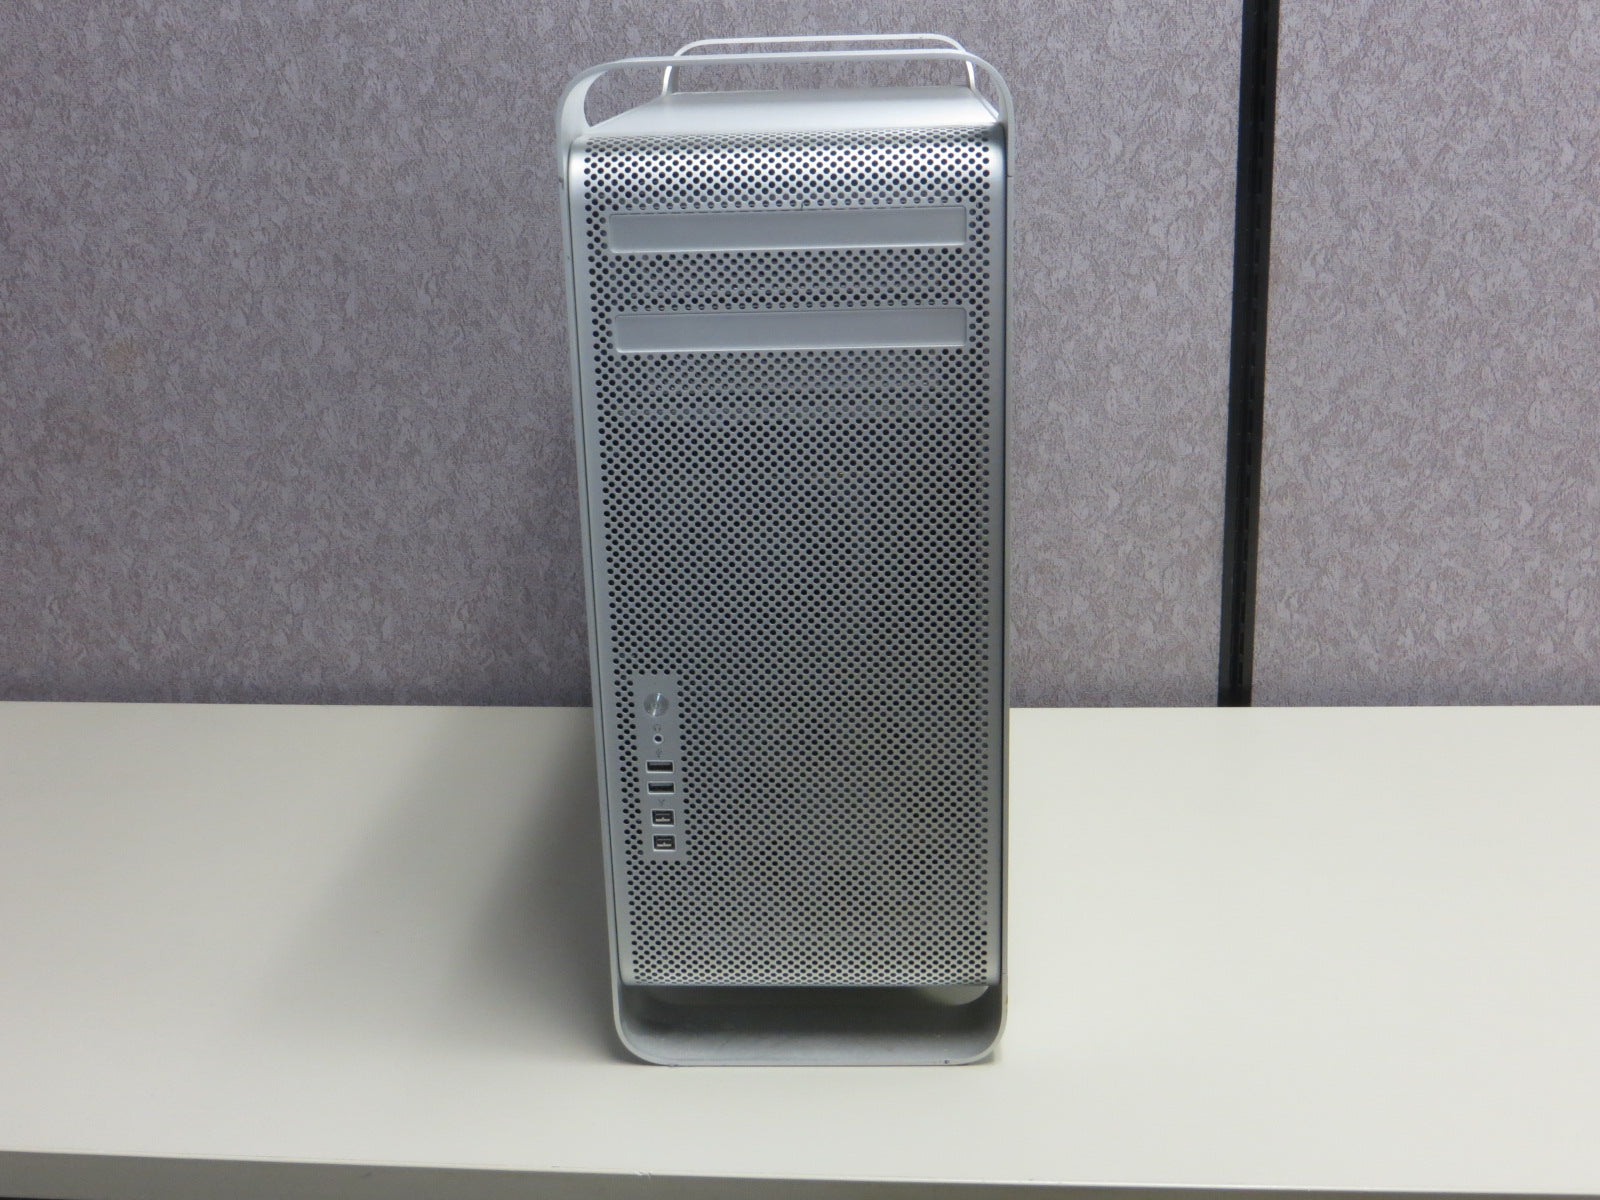 Mac Pro Early 2009 a1289 Intel Xeon 2.66 Ghz 1x Quad Core NVIDIA Quadro 4000 640GB HDD 8GB RAM 10.13.3